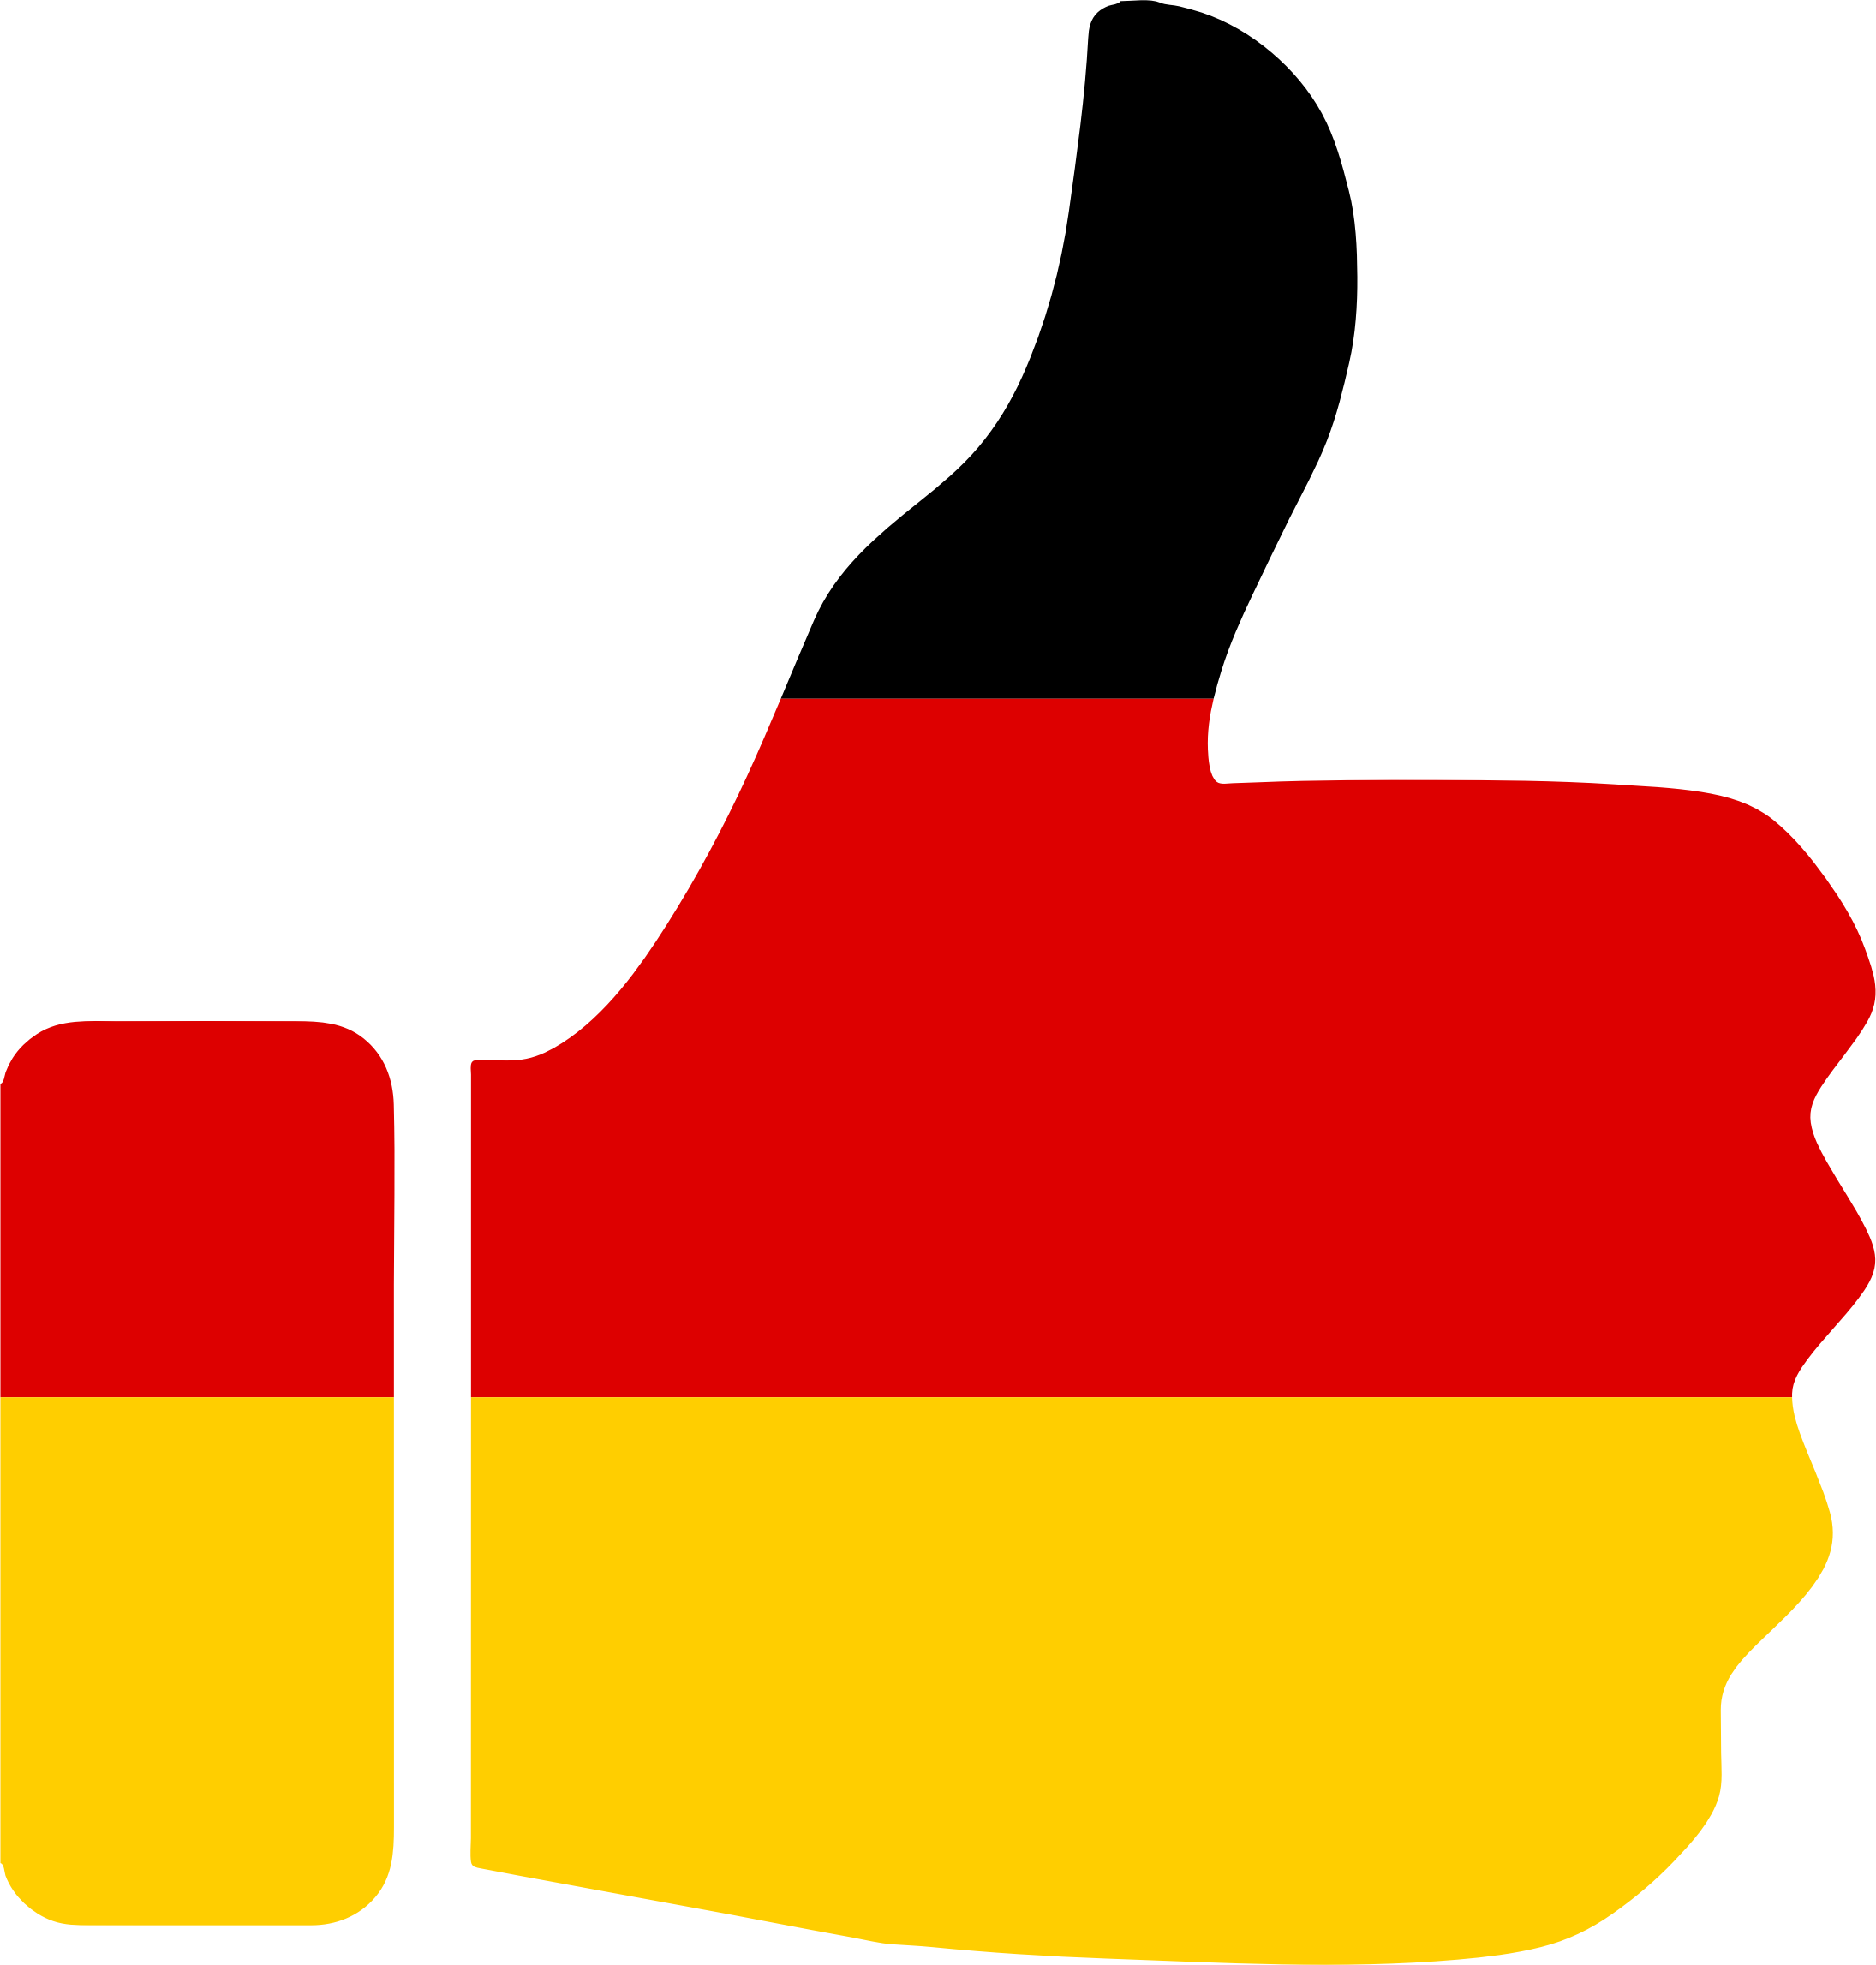 Big Image (Png) - Germany, Transparent background PNG HD thumbnail